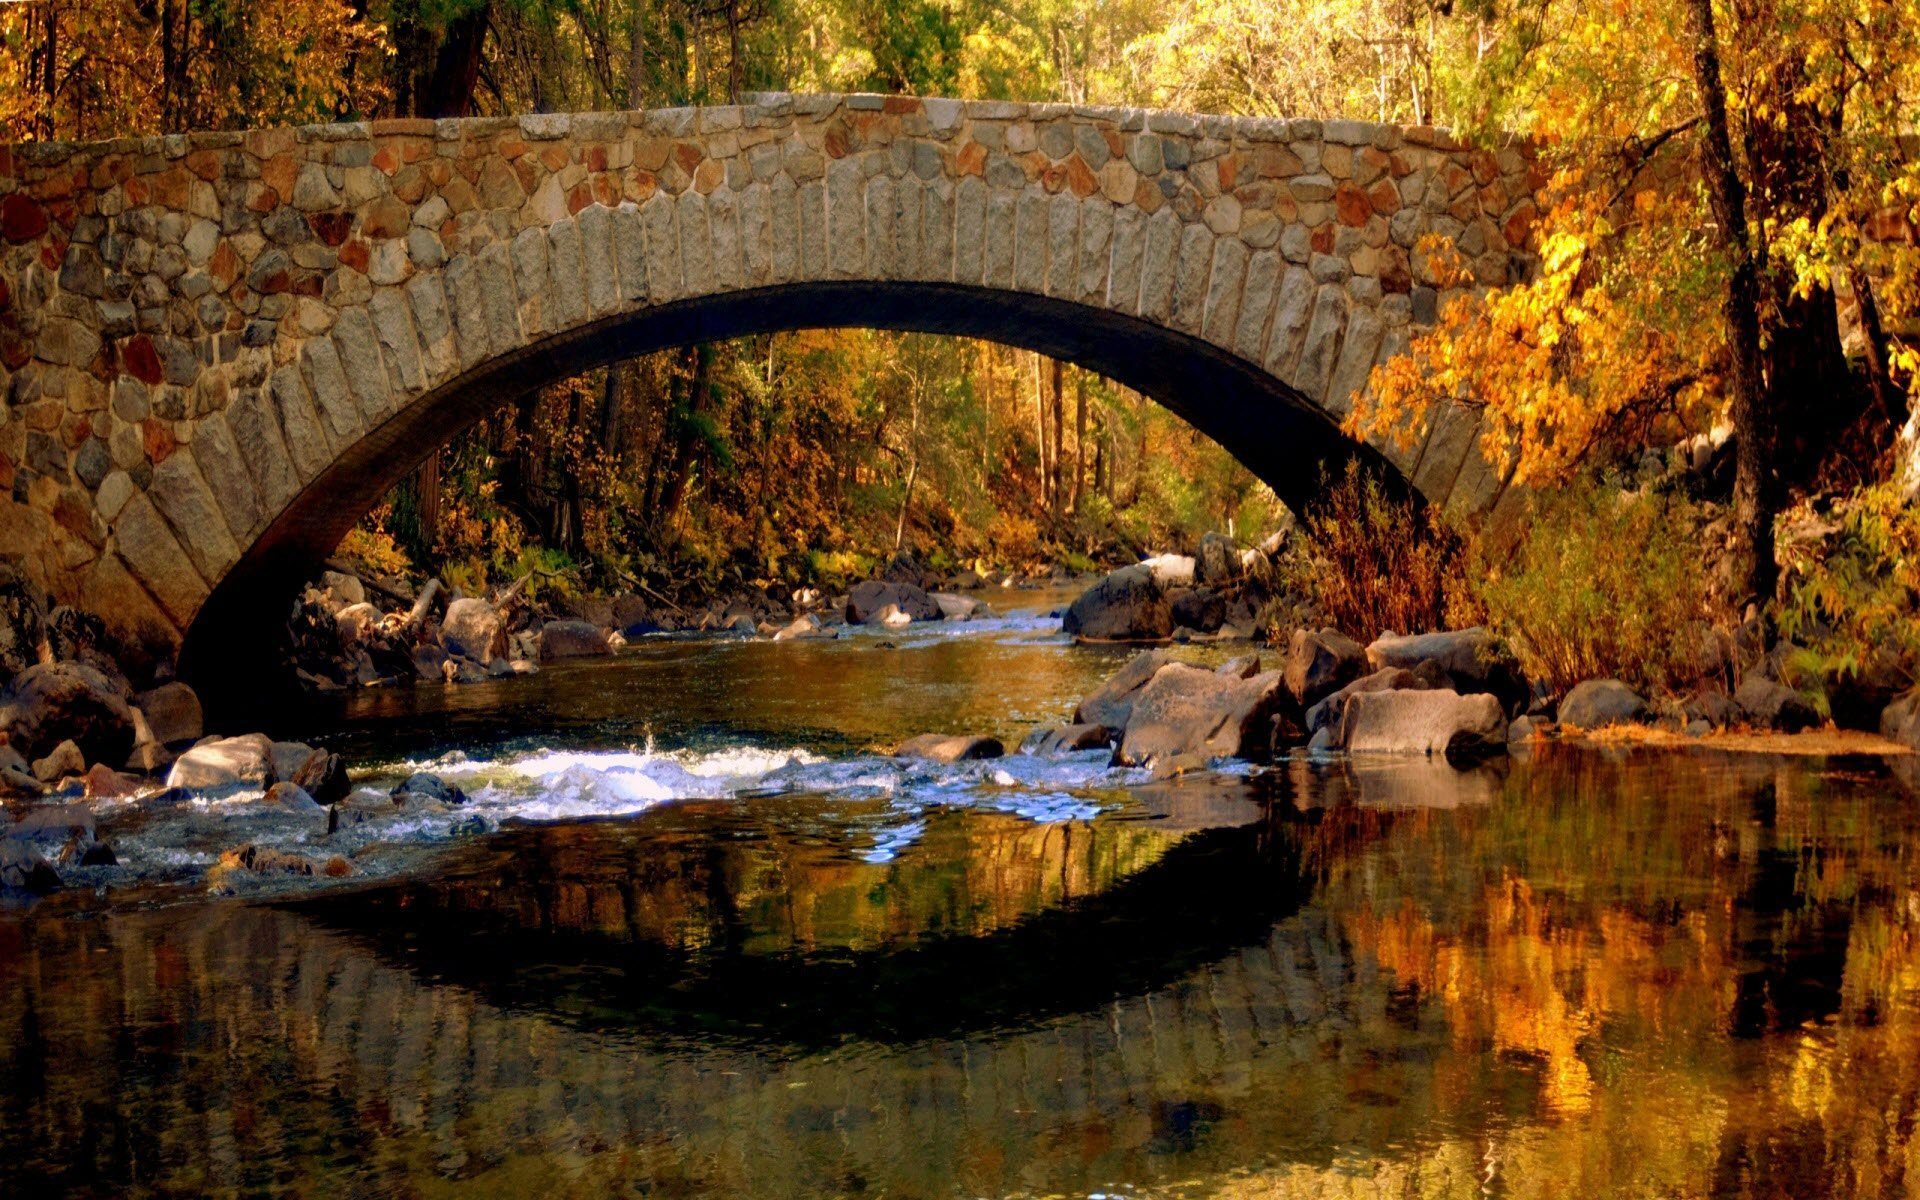 Download Free Autumn River Wallpaper.